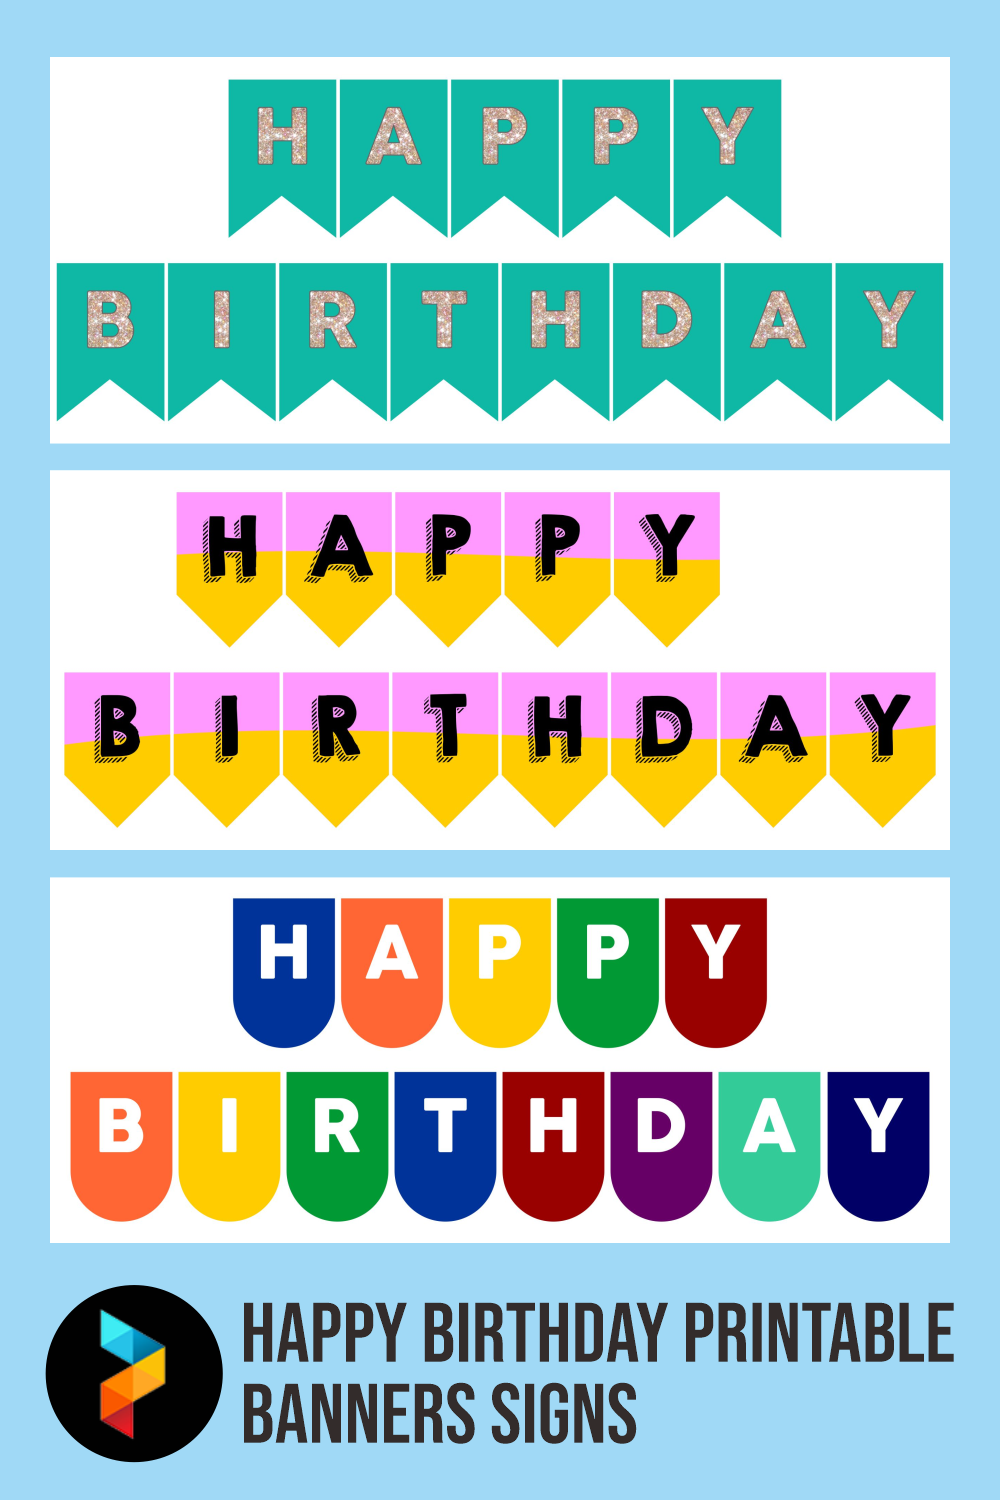 Happy Birthday Printable Banners Signs